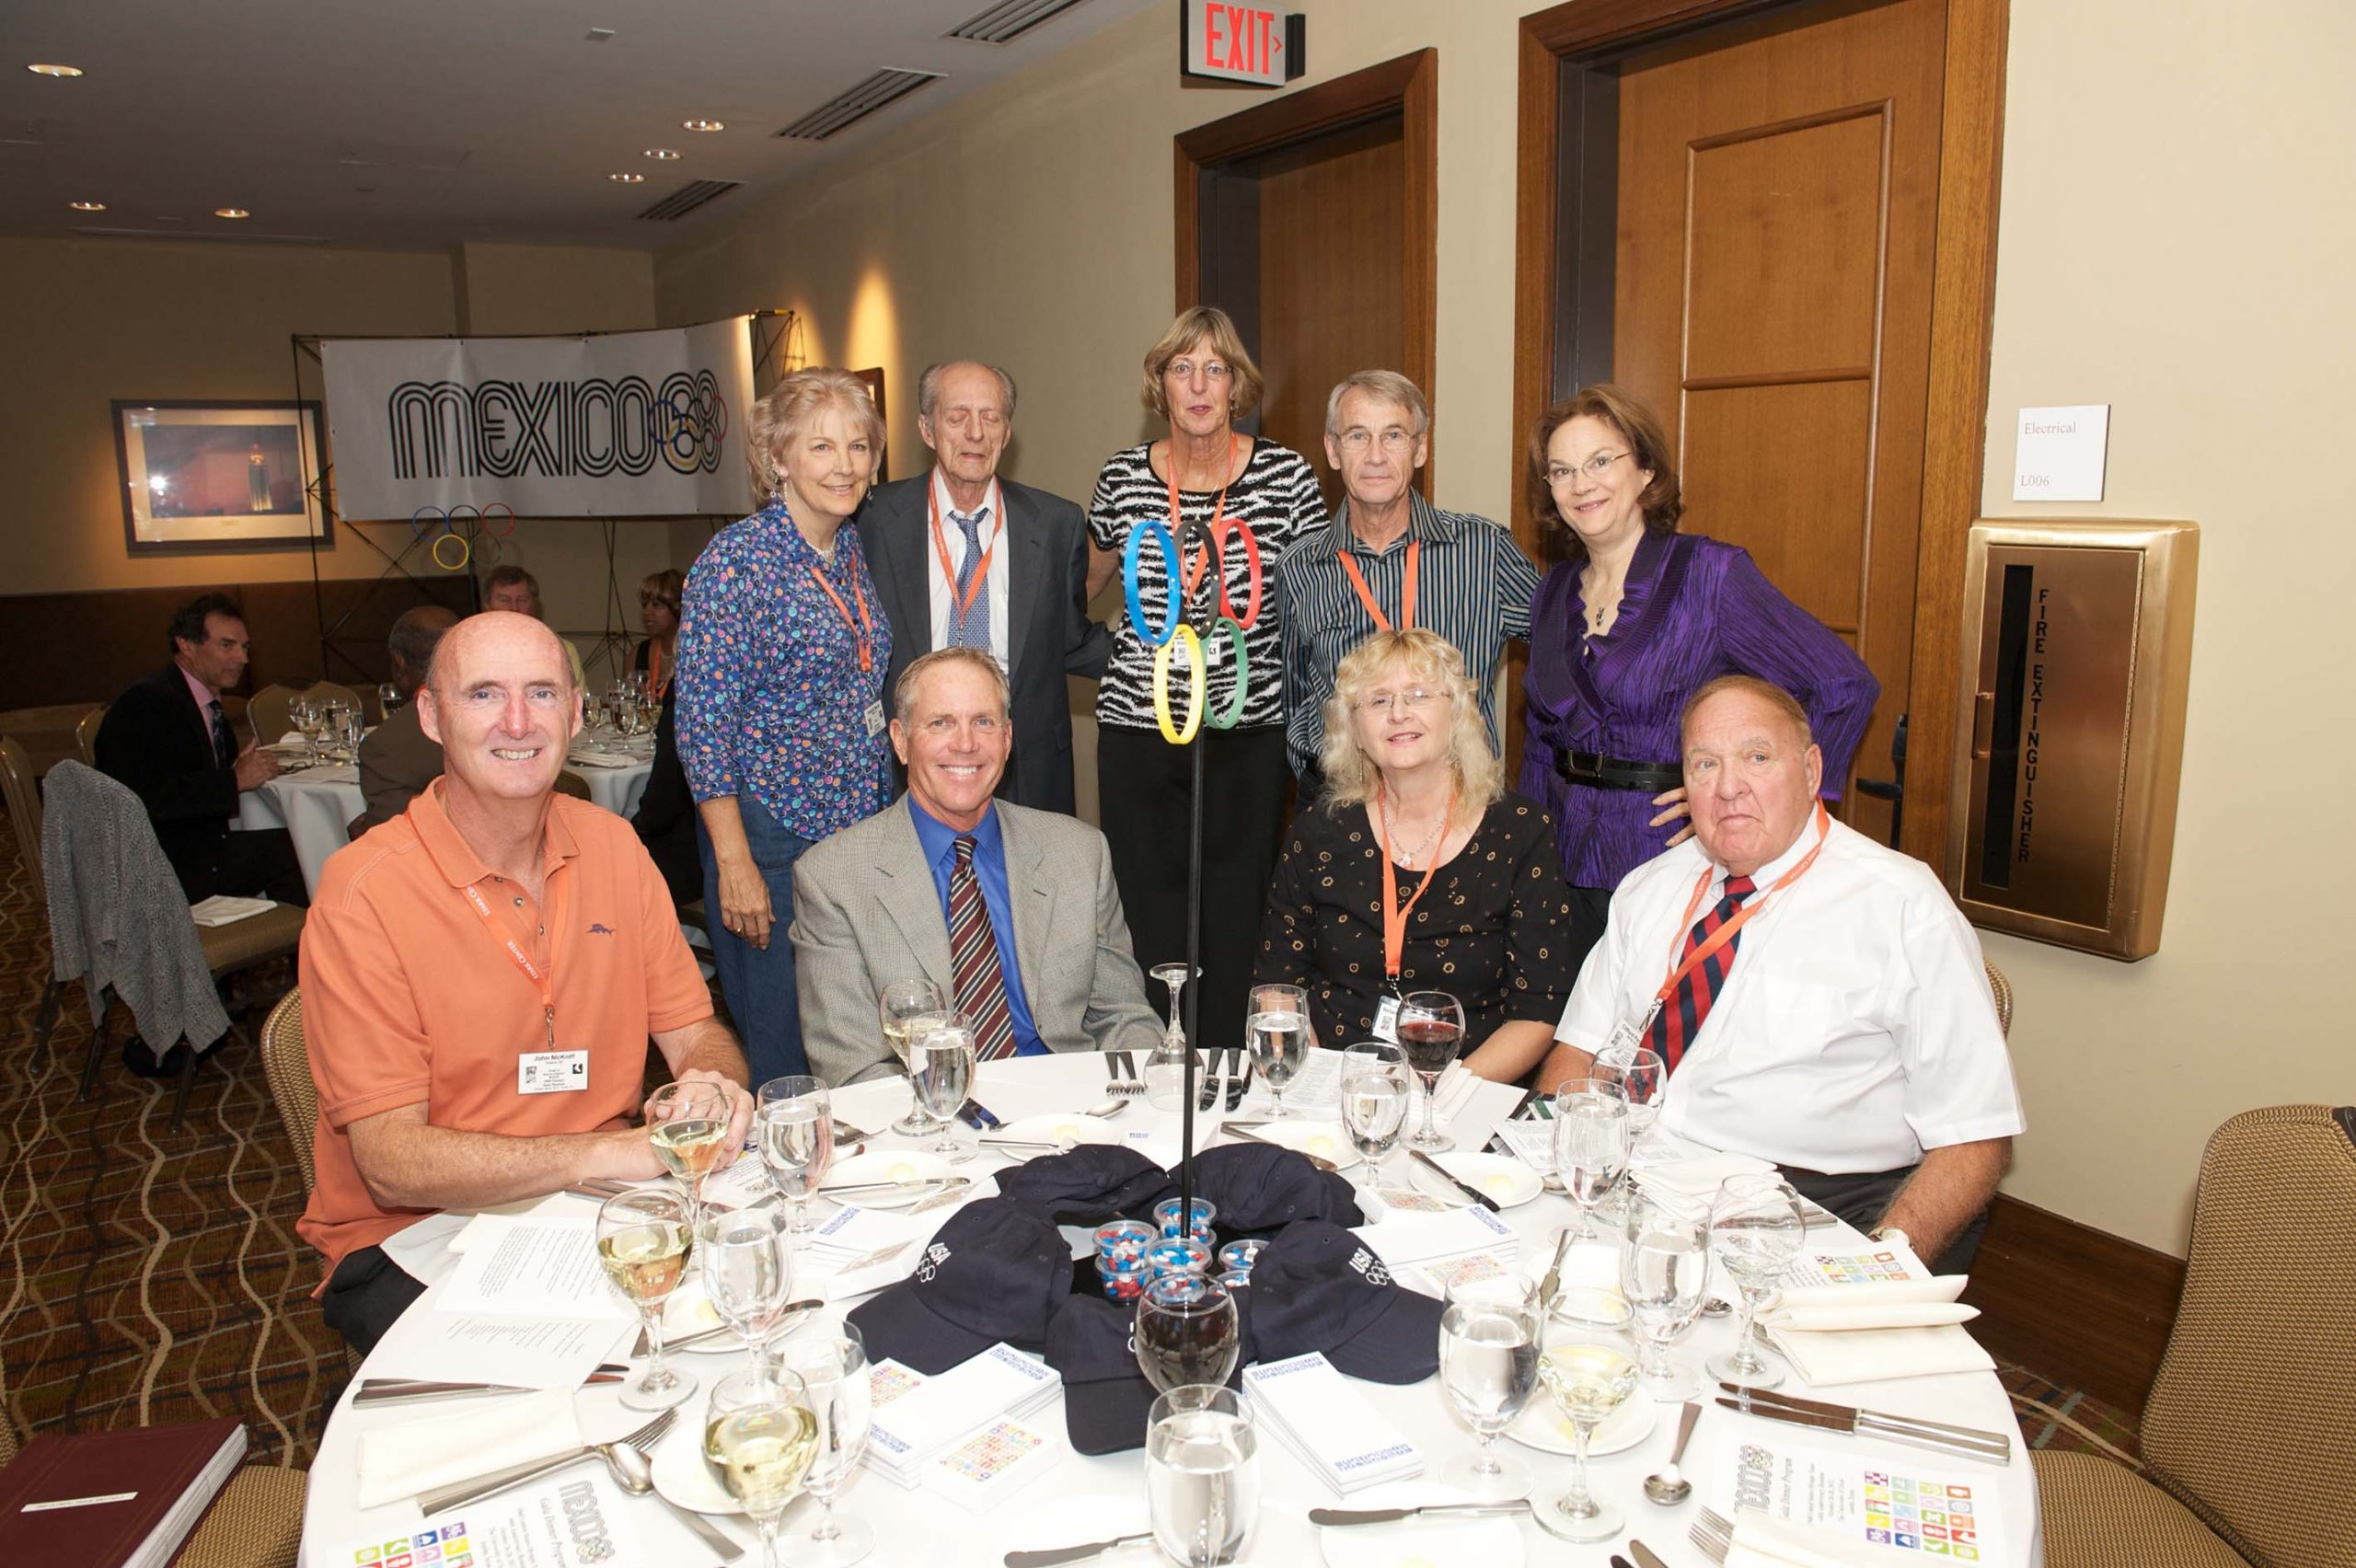 Thirteen people at two tables at the 1968 U.S. Olympic Team 2012 Reunion.